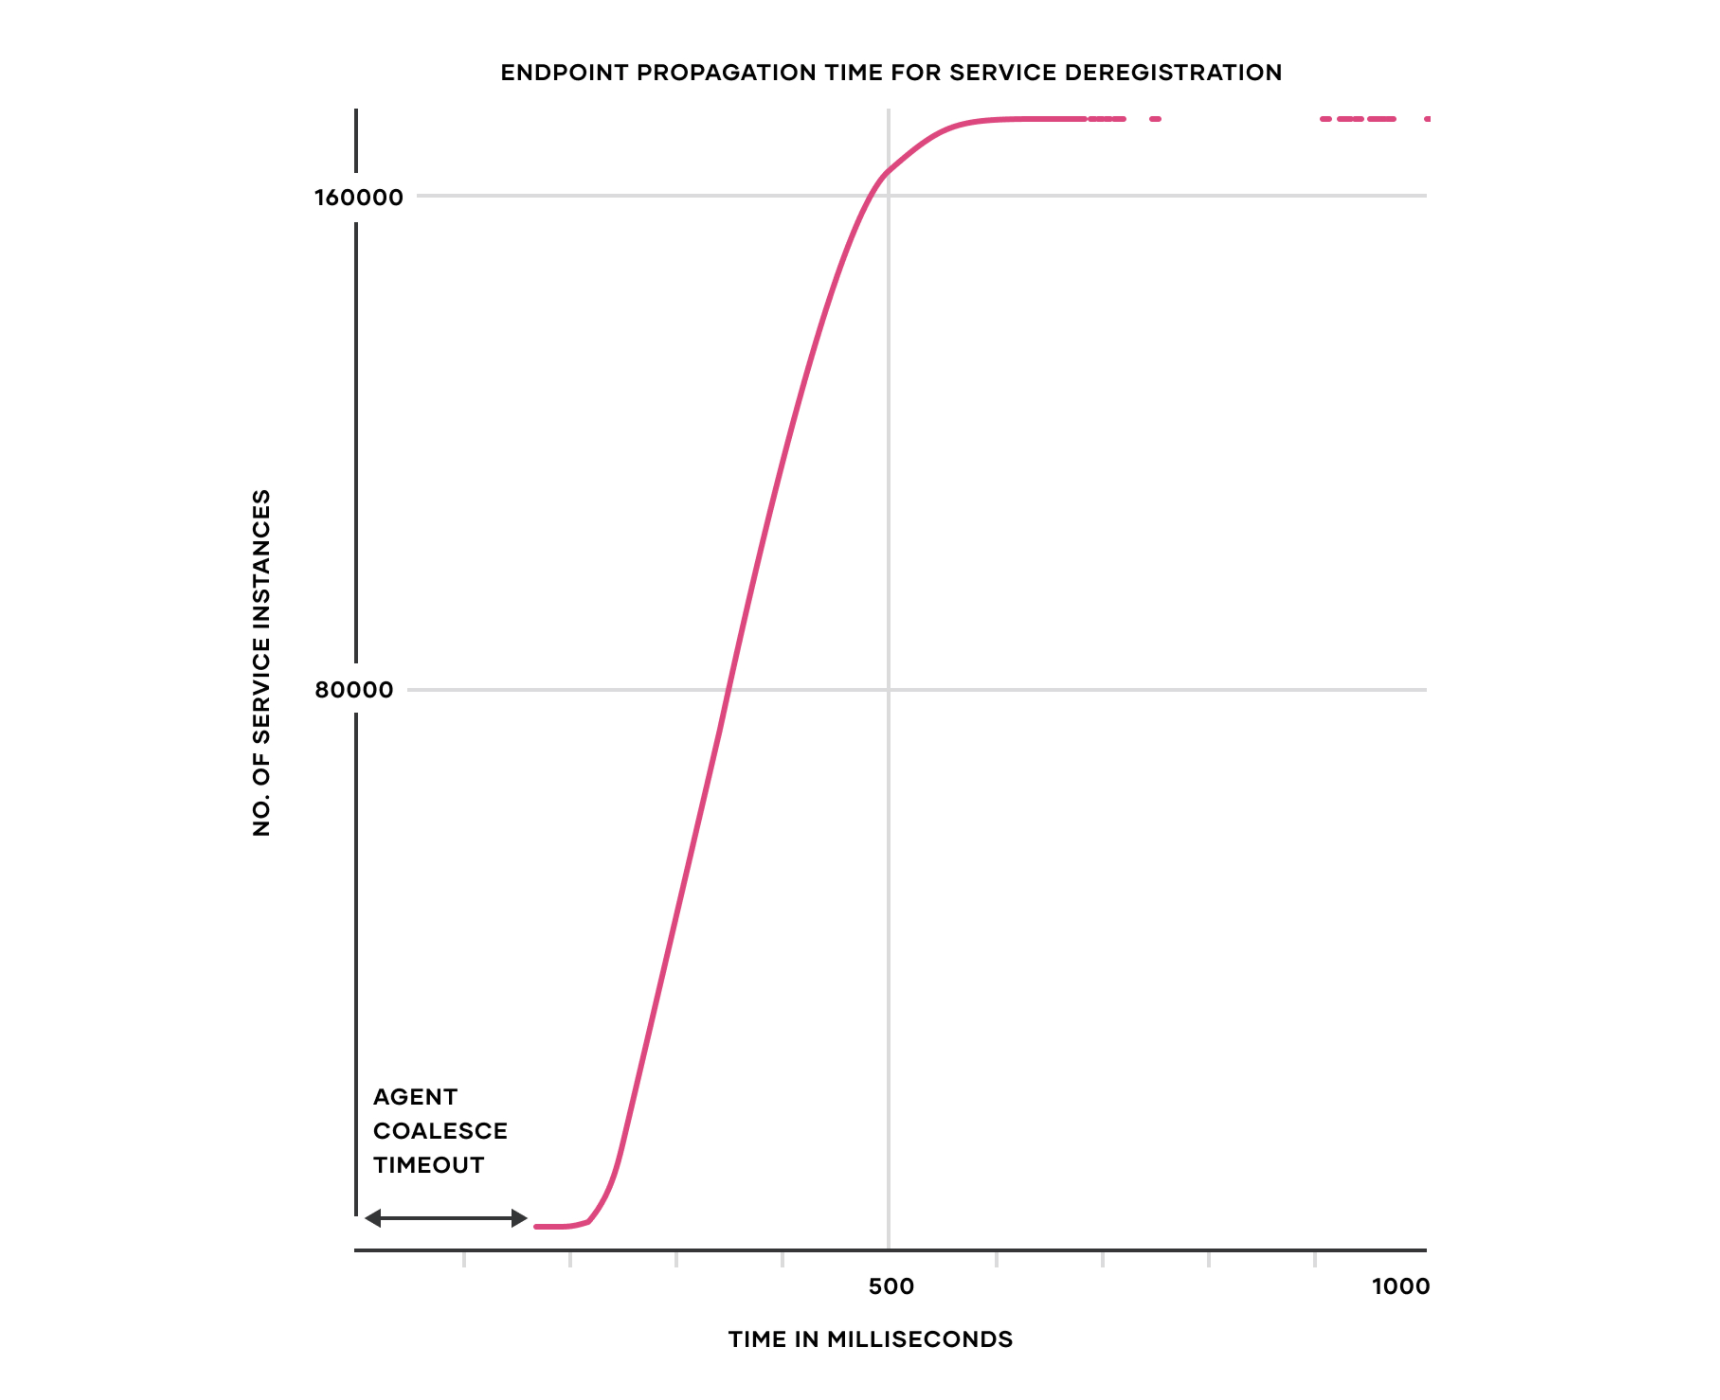 Chart: Endpoint propagation time for service deregistration. 172,000 service instances (~96.6% of the total service instances) in under 1 second.